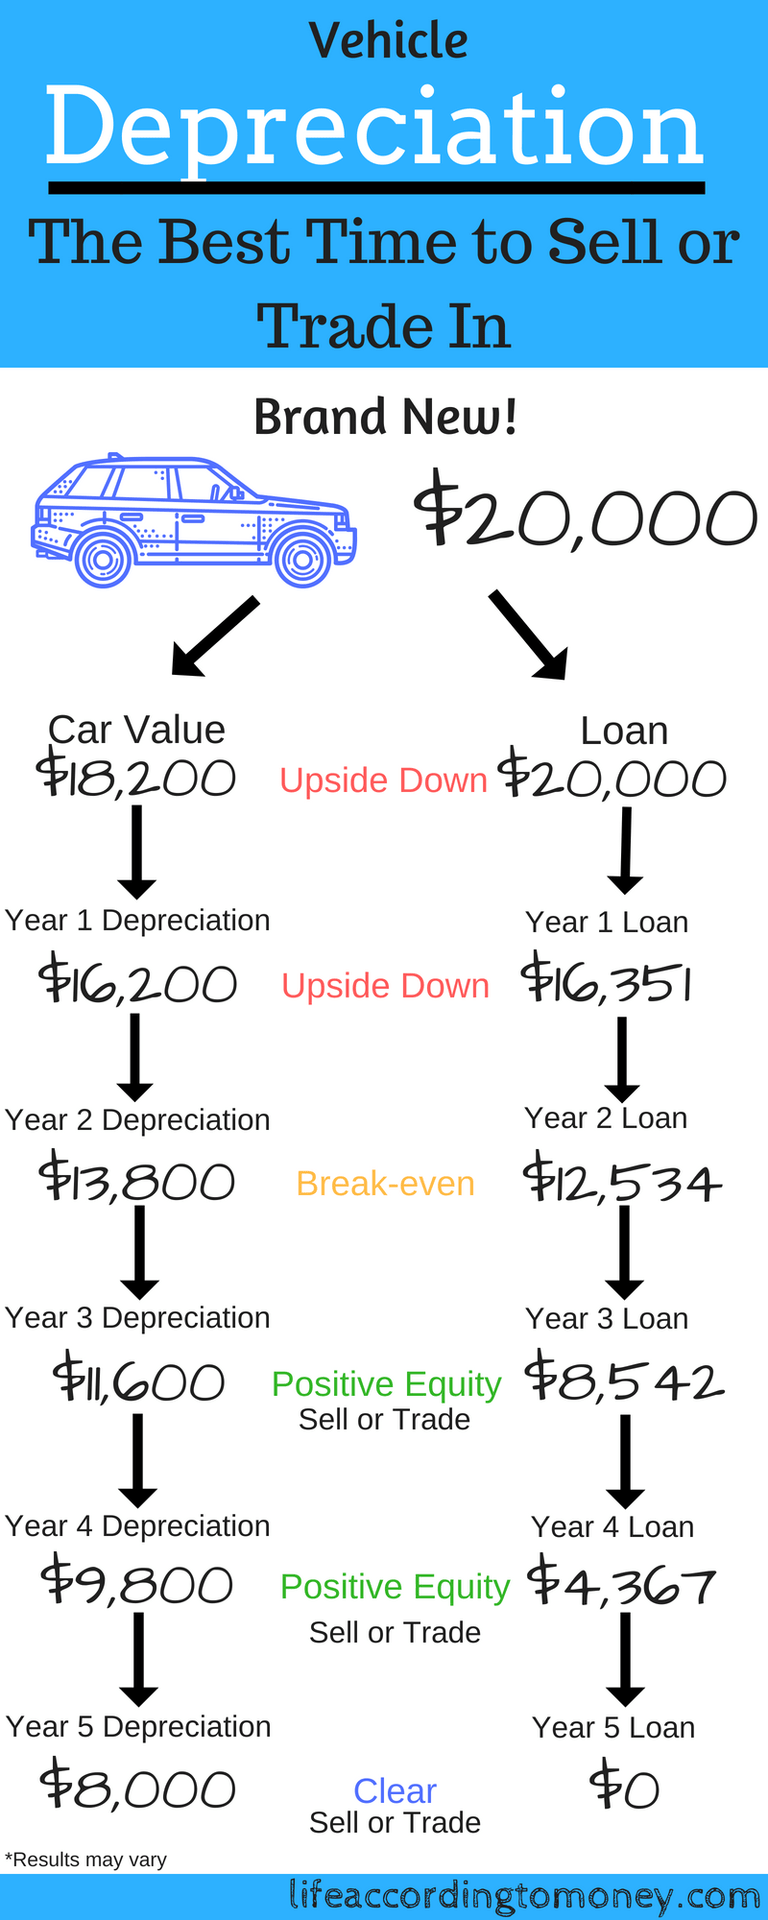 Buying Vs Leasing A Car Life According To Money Lease Vs Buy Car Best Money Saving Tips Car Lease